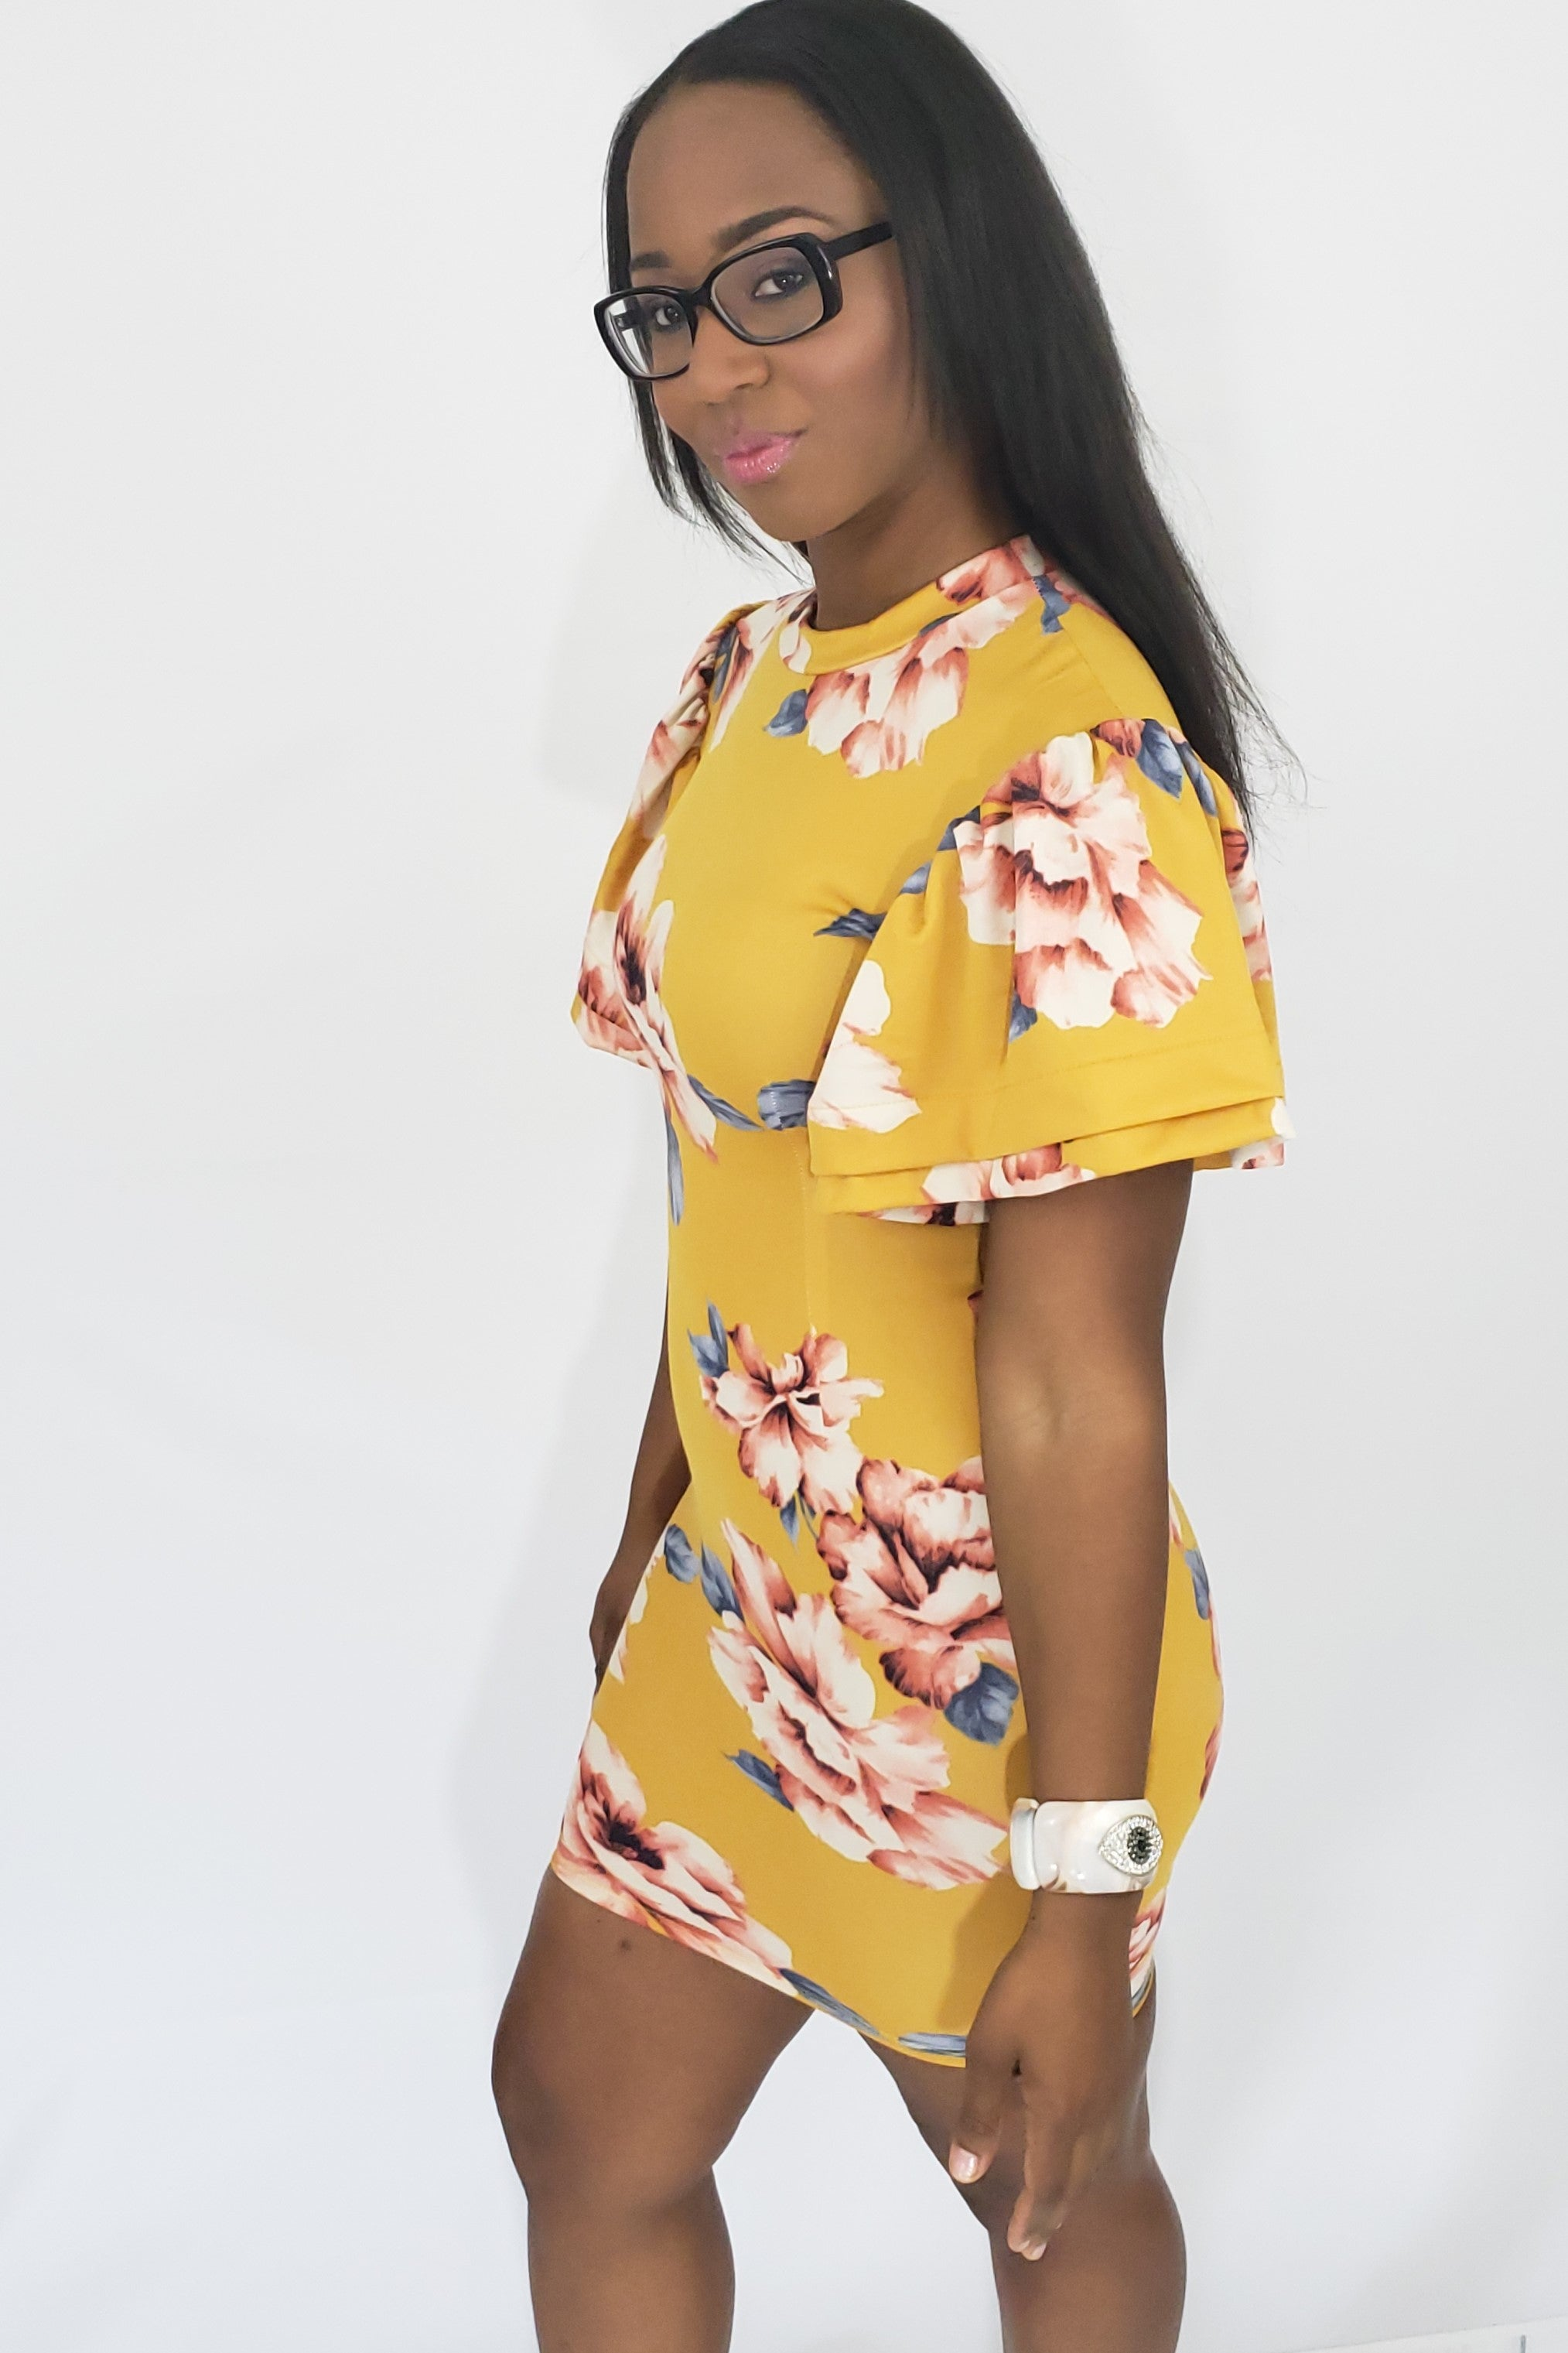 8bfab251f62 Spring Forward with Brittany Mustard Floral Dress. Spring Forward with  Brittany Mustard Floral Dress - Houzz of DVA Boutique